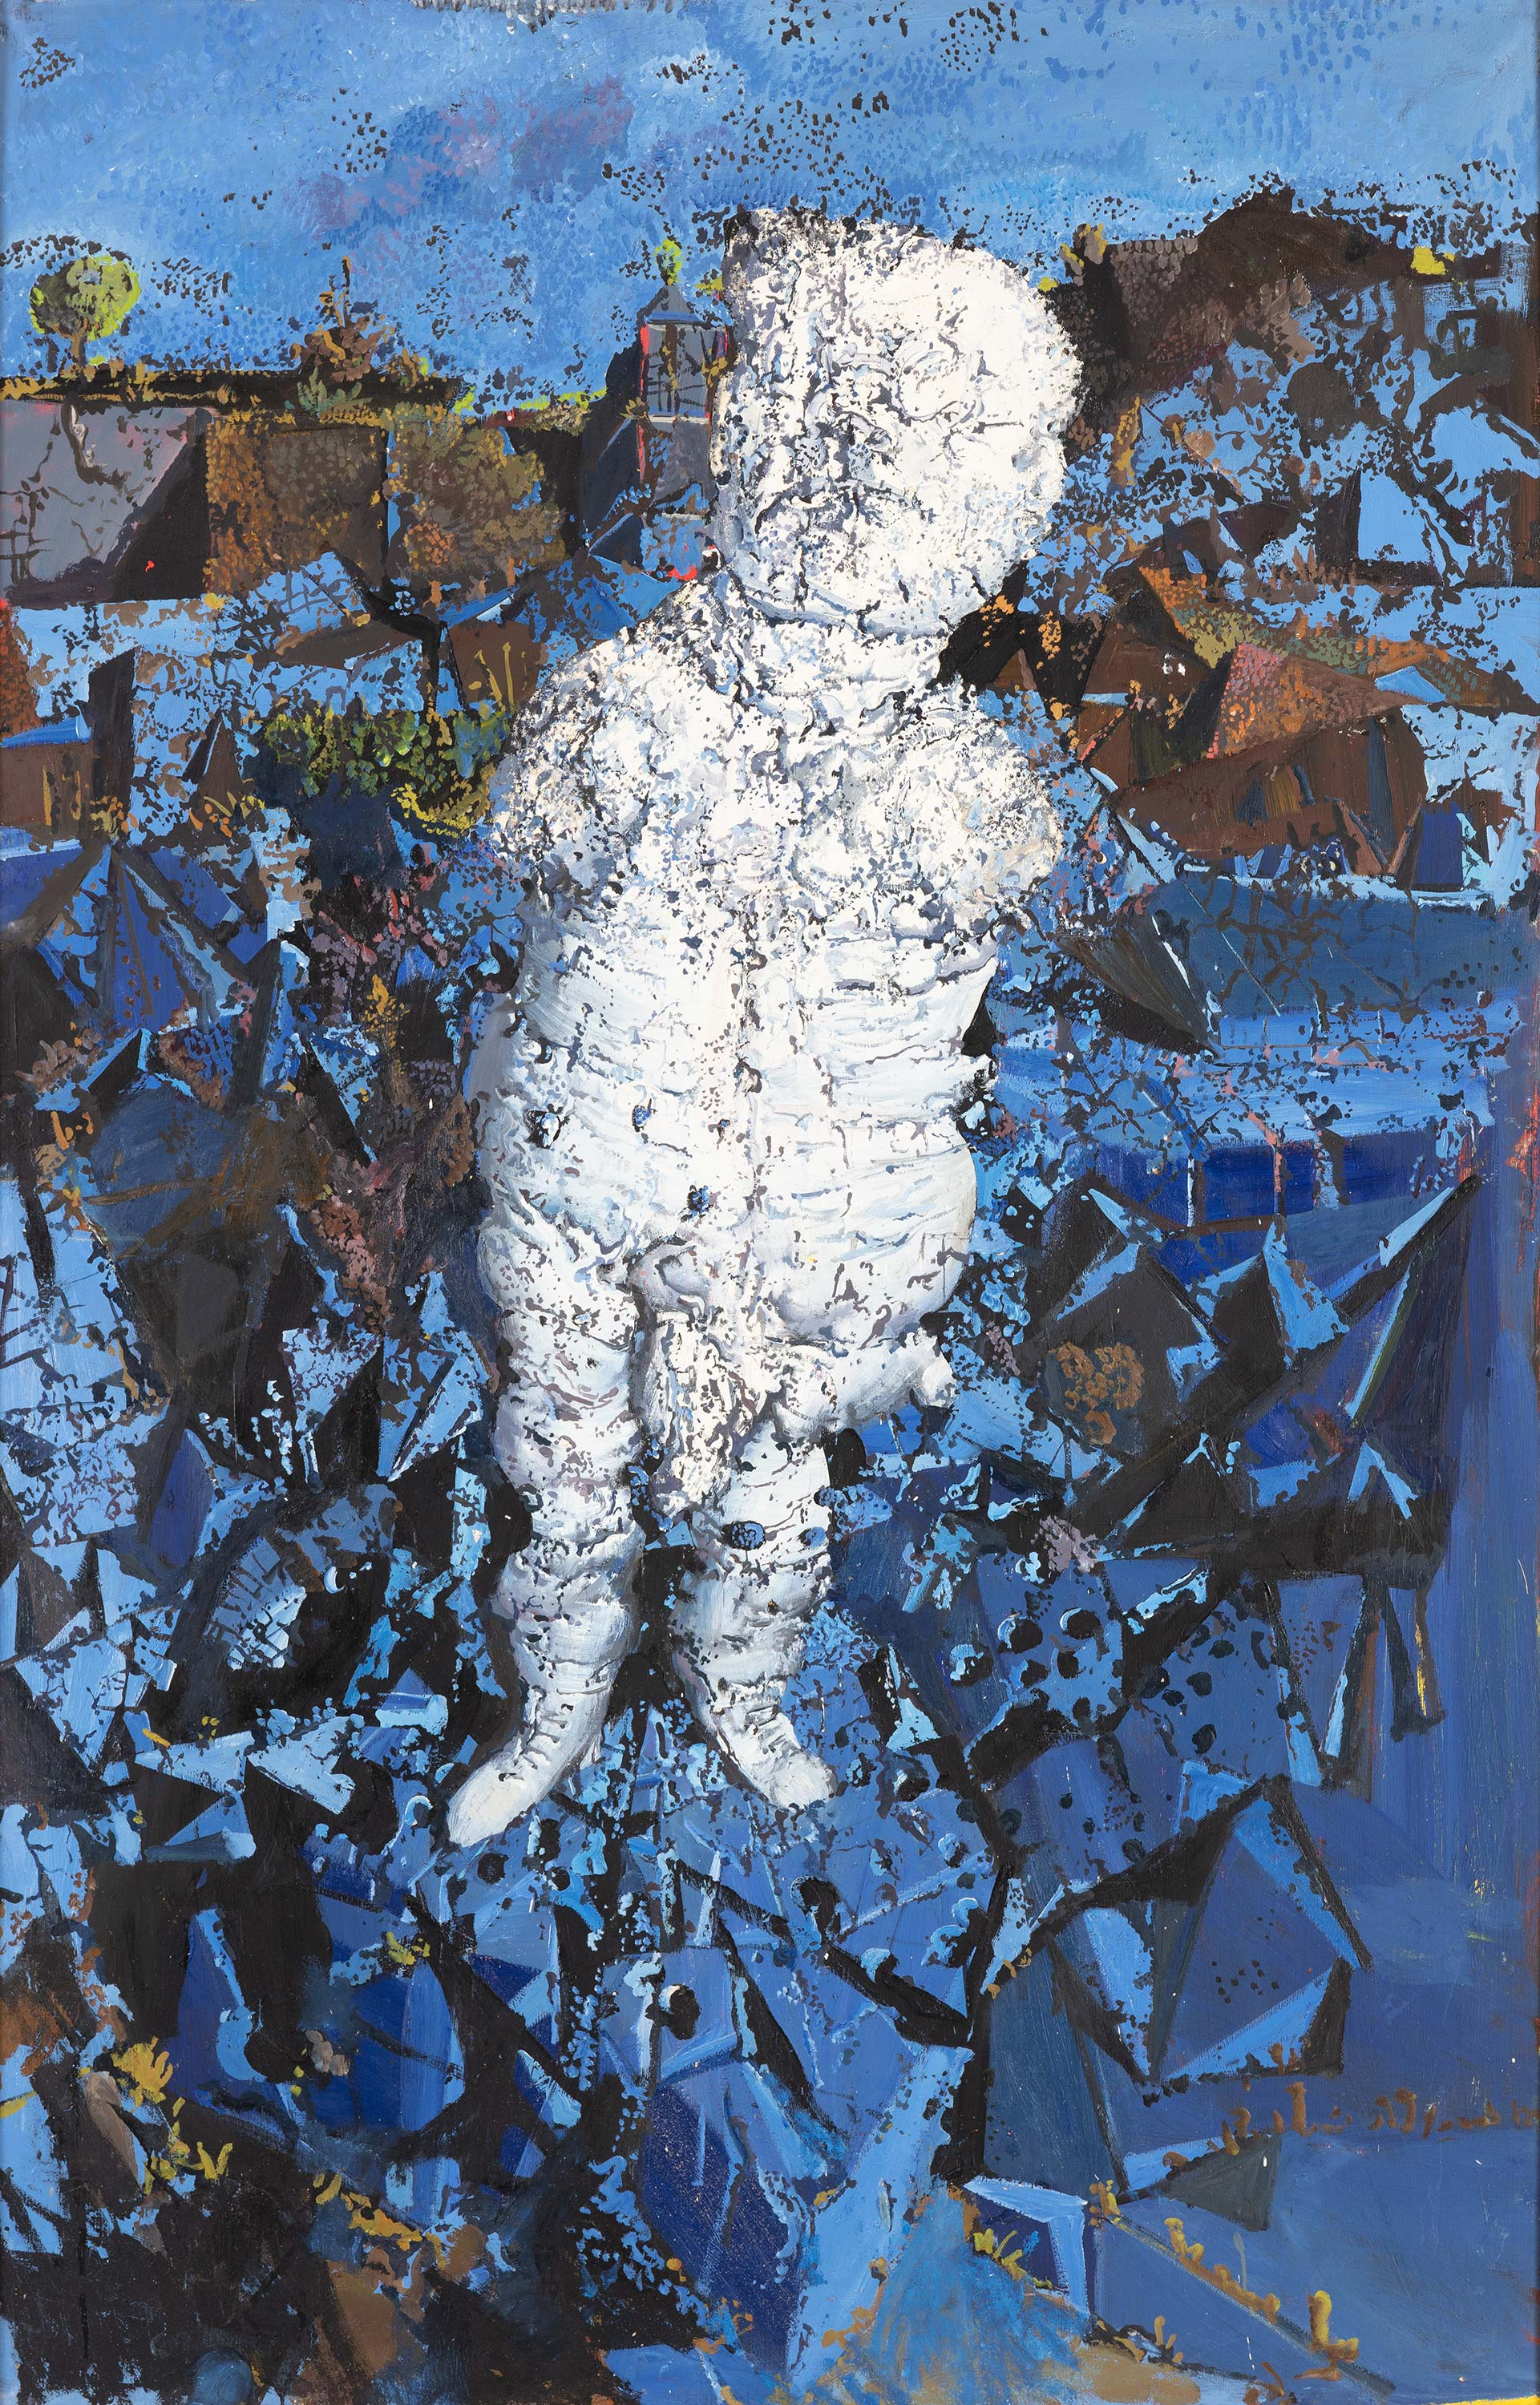 Dado's painting: Untitled